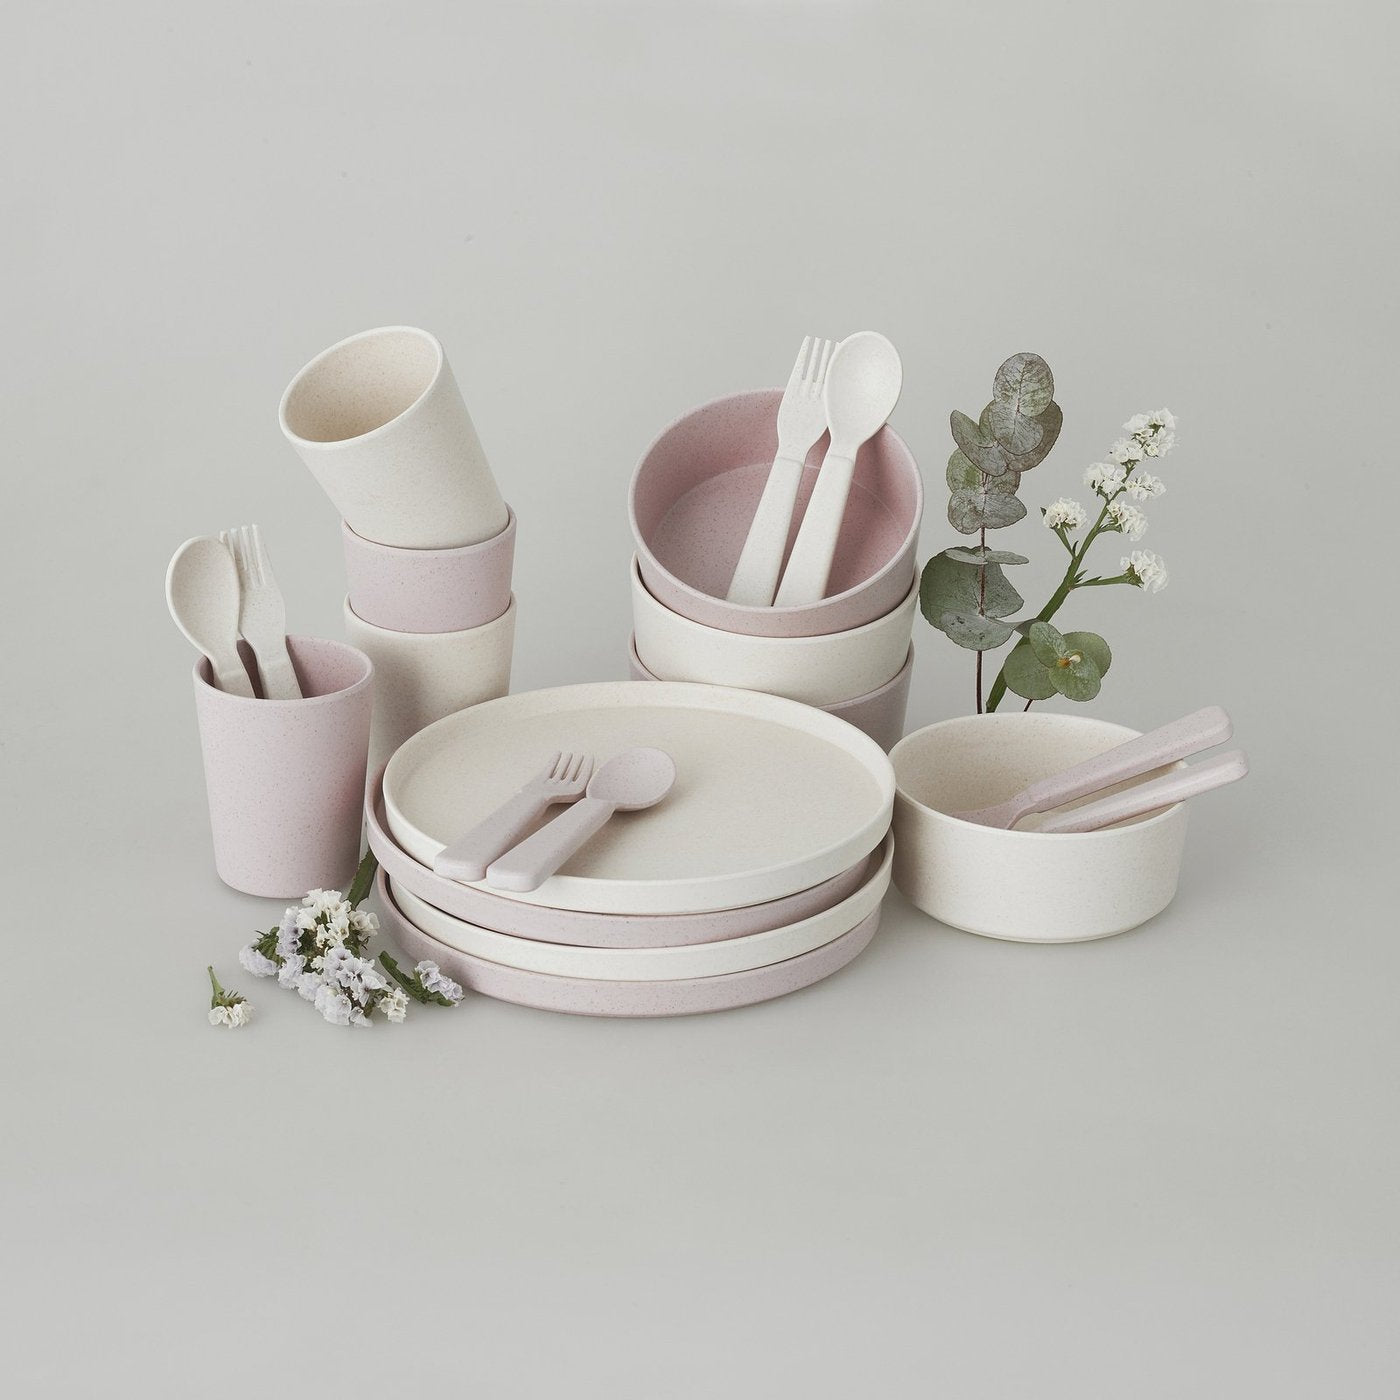 Amelia Frank - Refresh my Kitchen - Sunset Rose & Coastal Foam